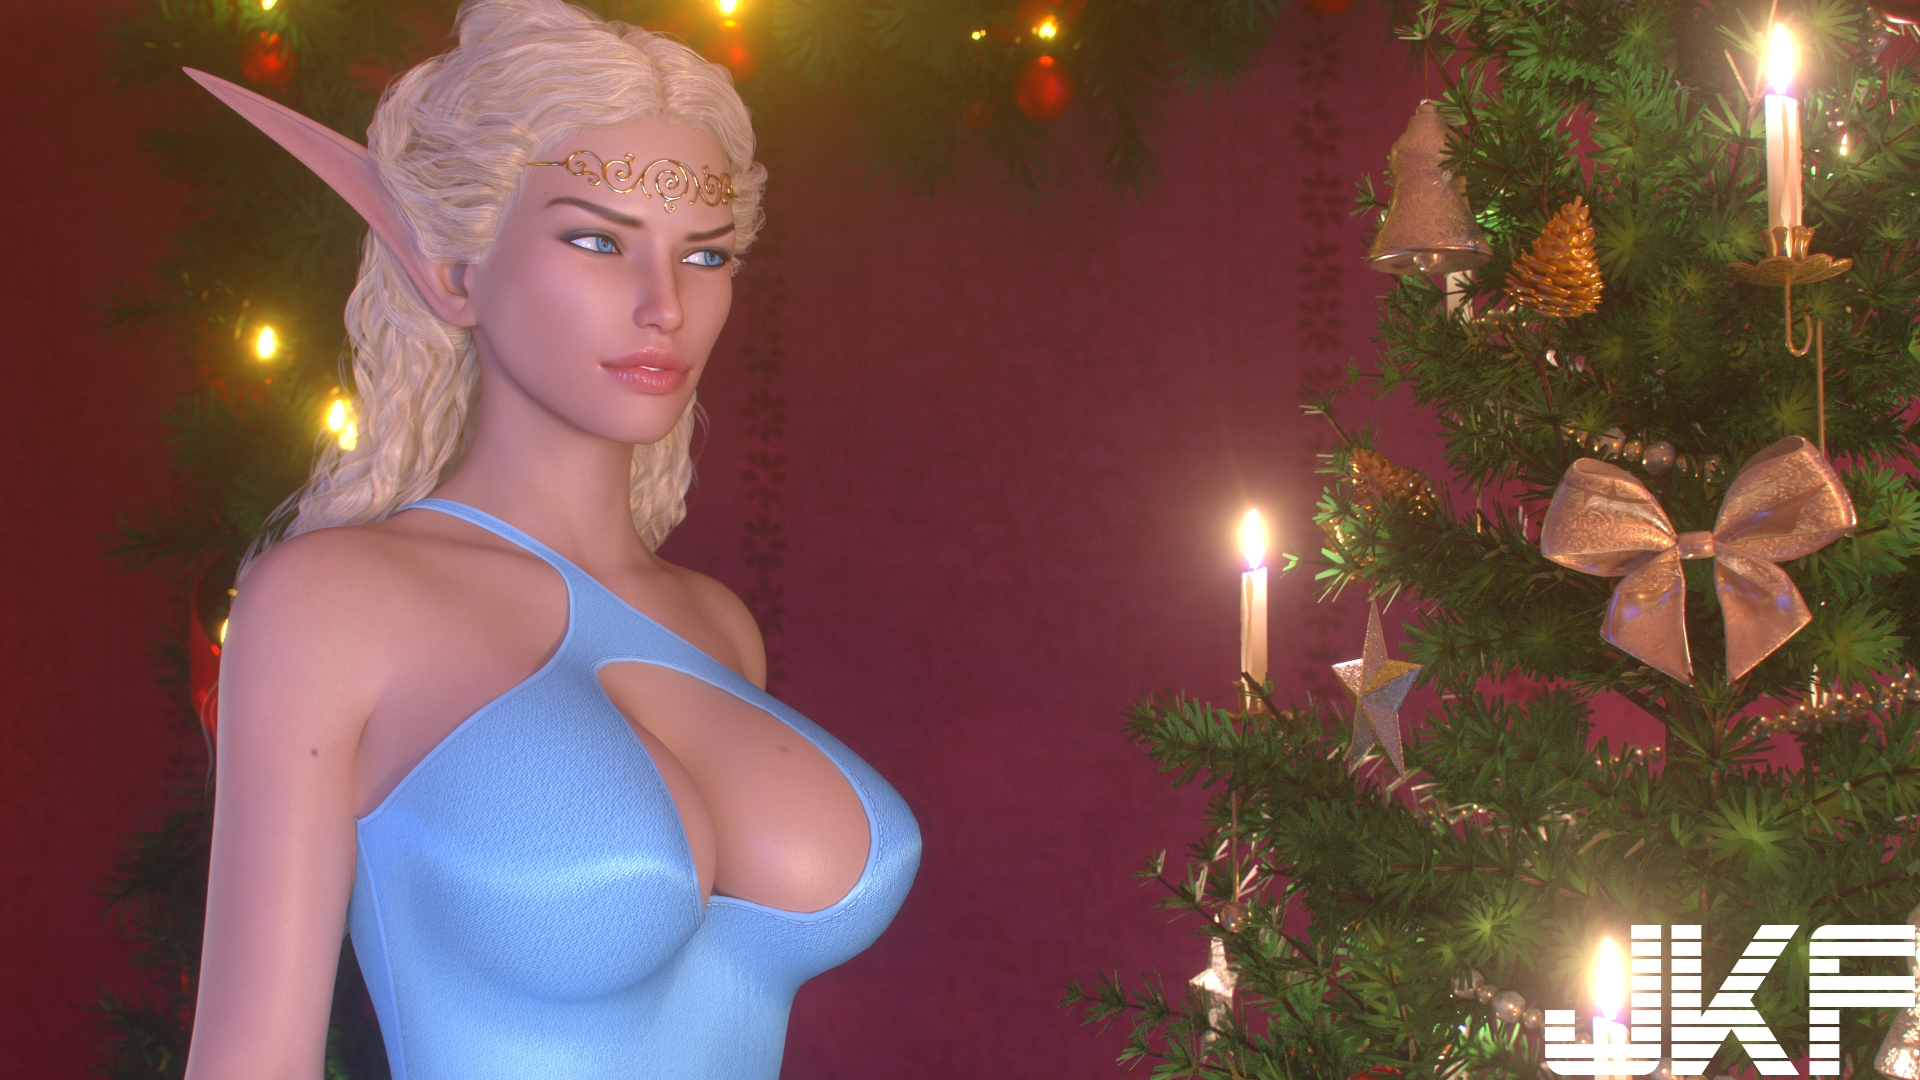 Magic_Christmas_012.jpg